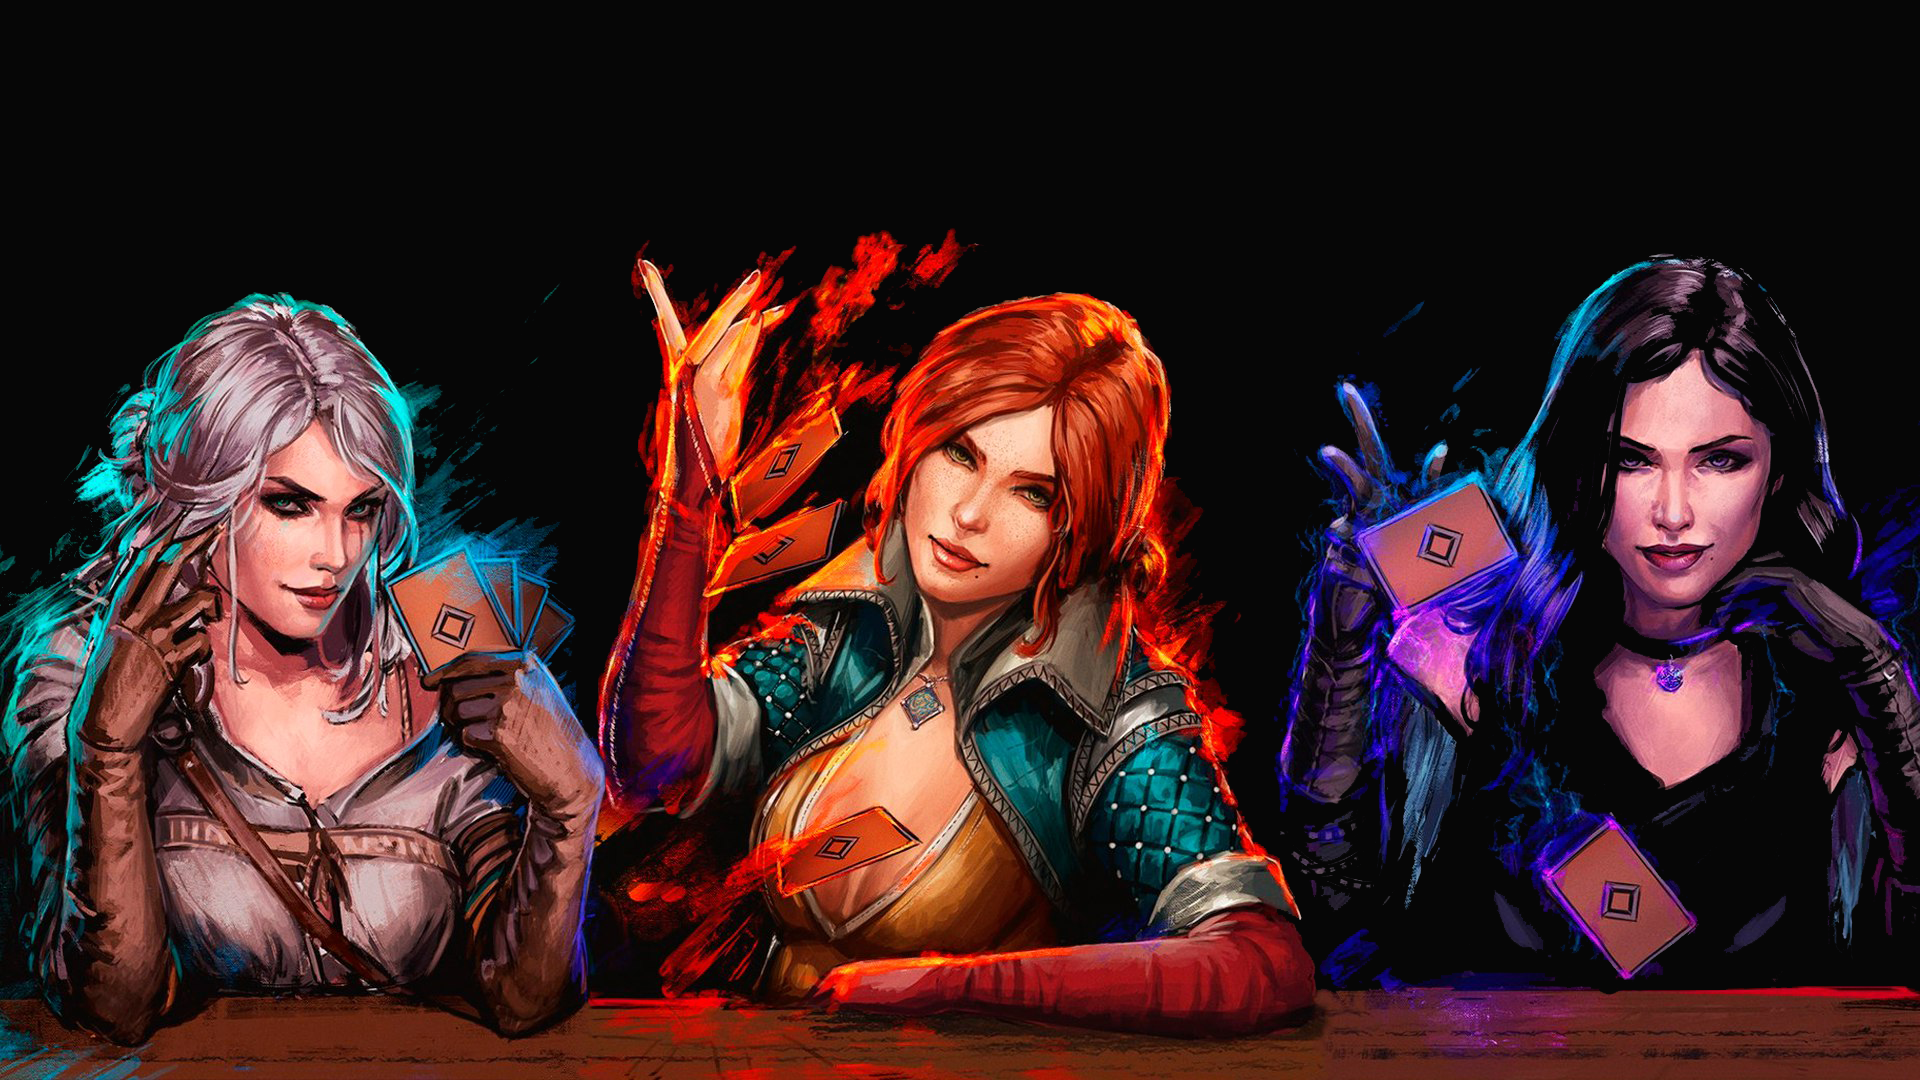 gwent__the_witcher_card_game_wallpaper_by_frampos-daq4equ.png